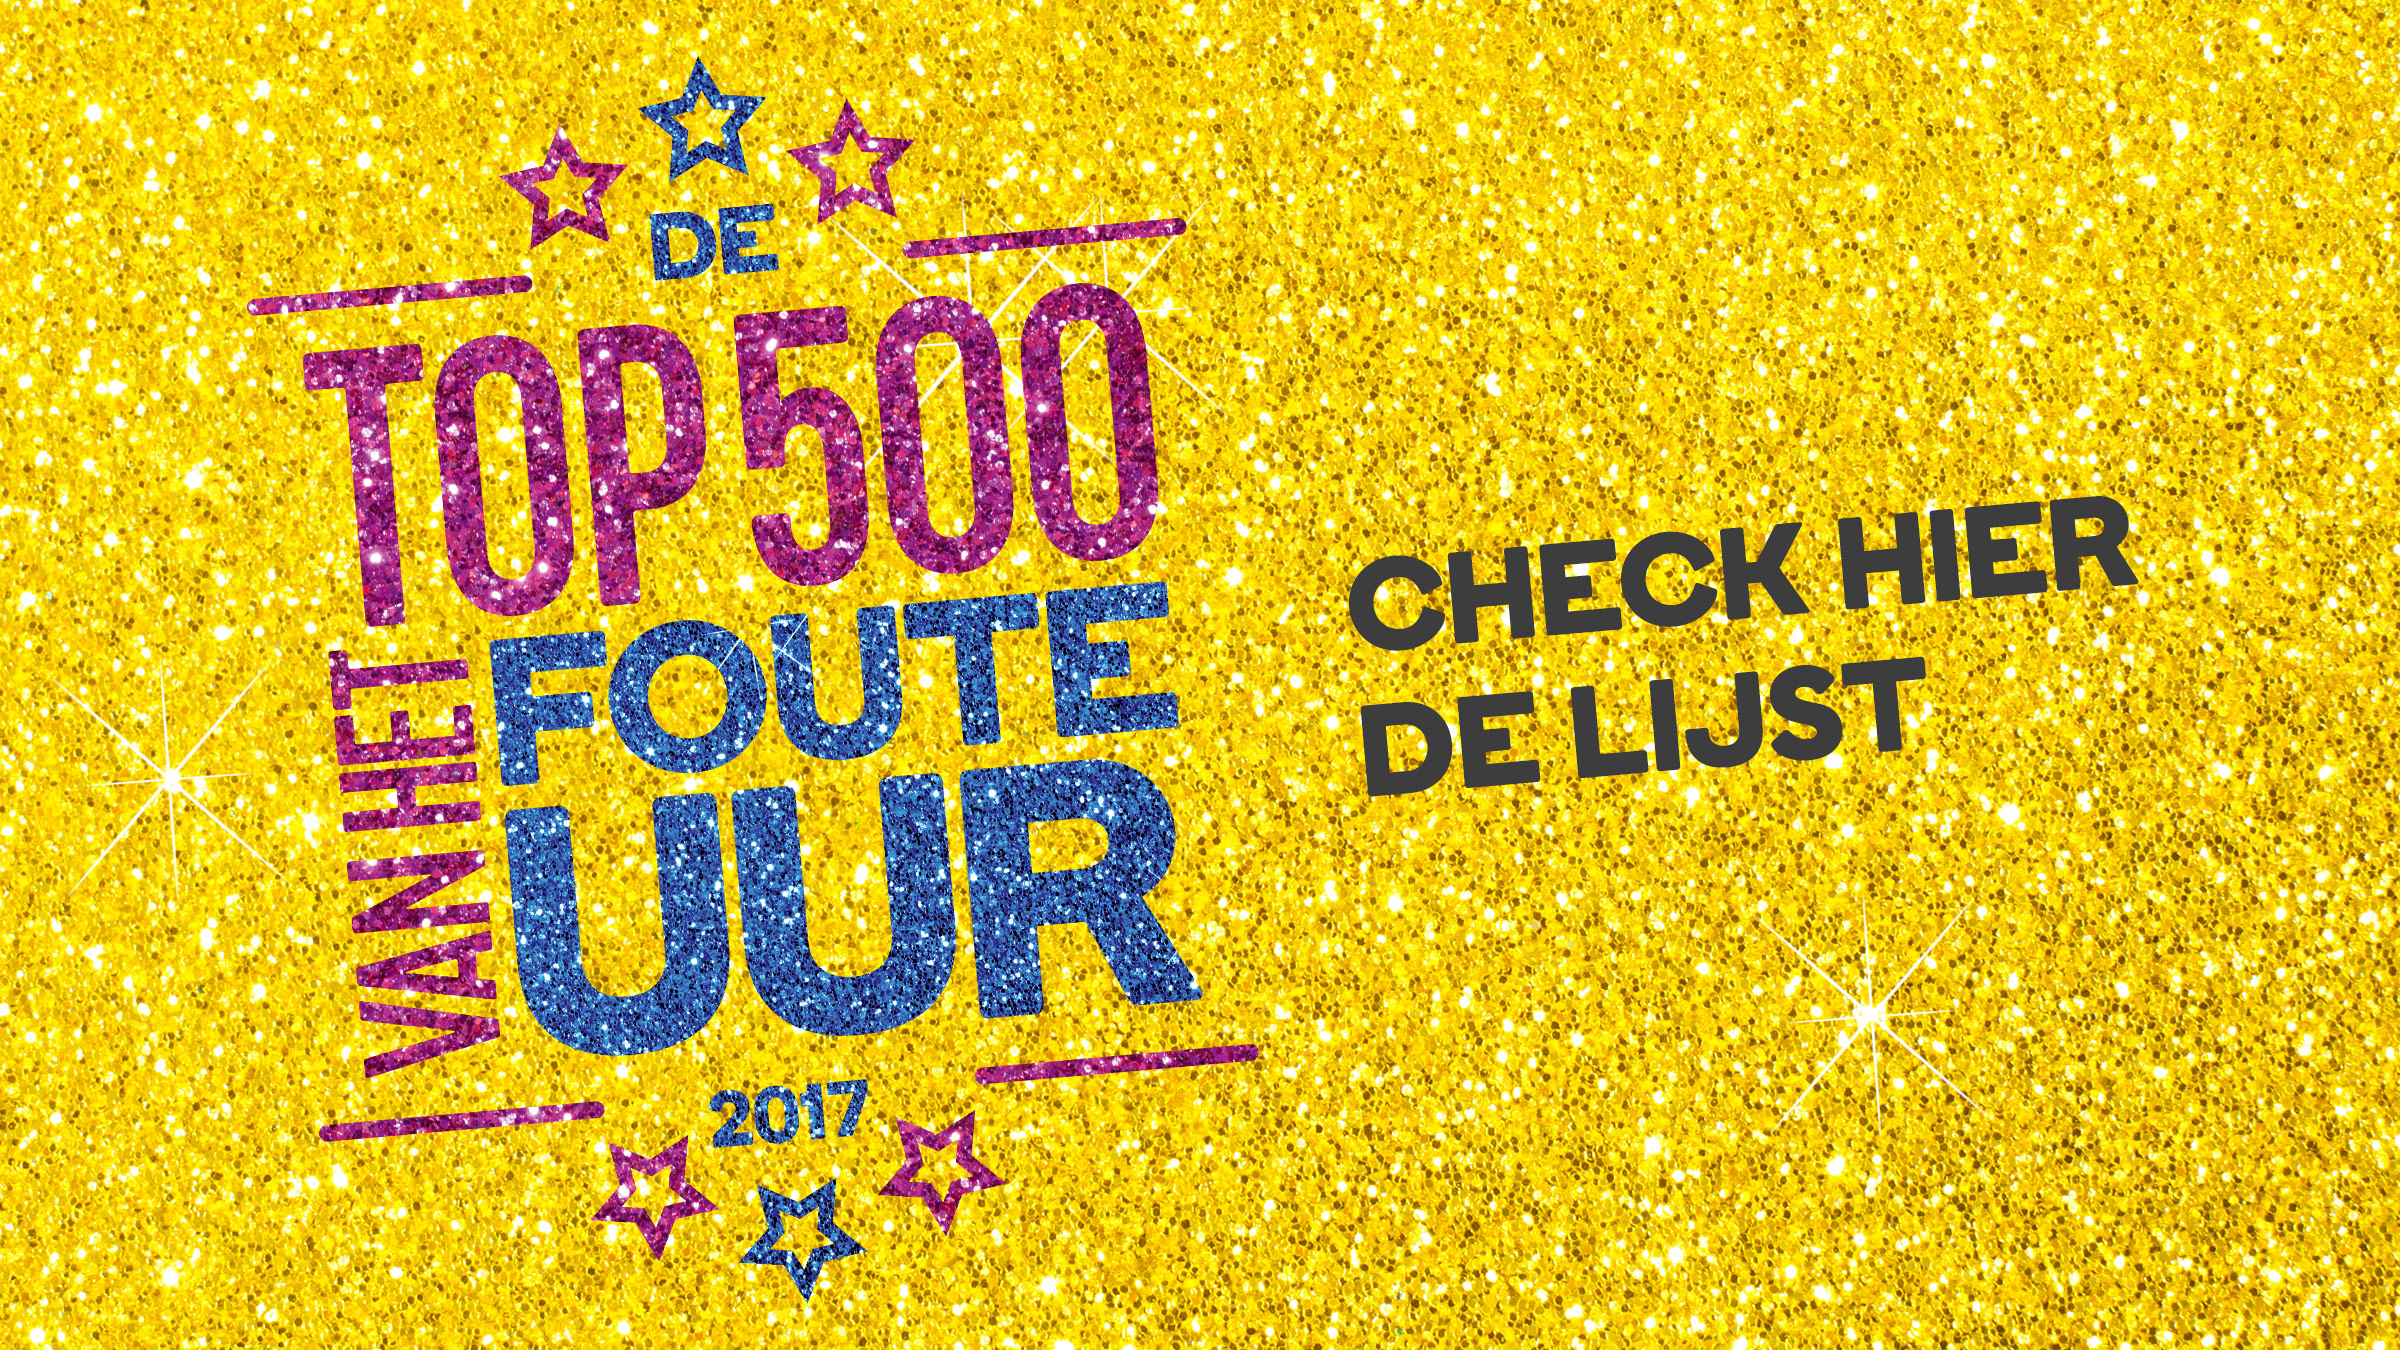 Qmusic teaser top500fout check17